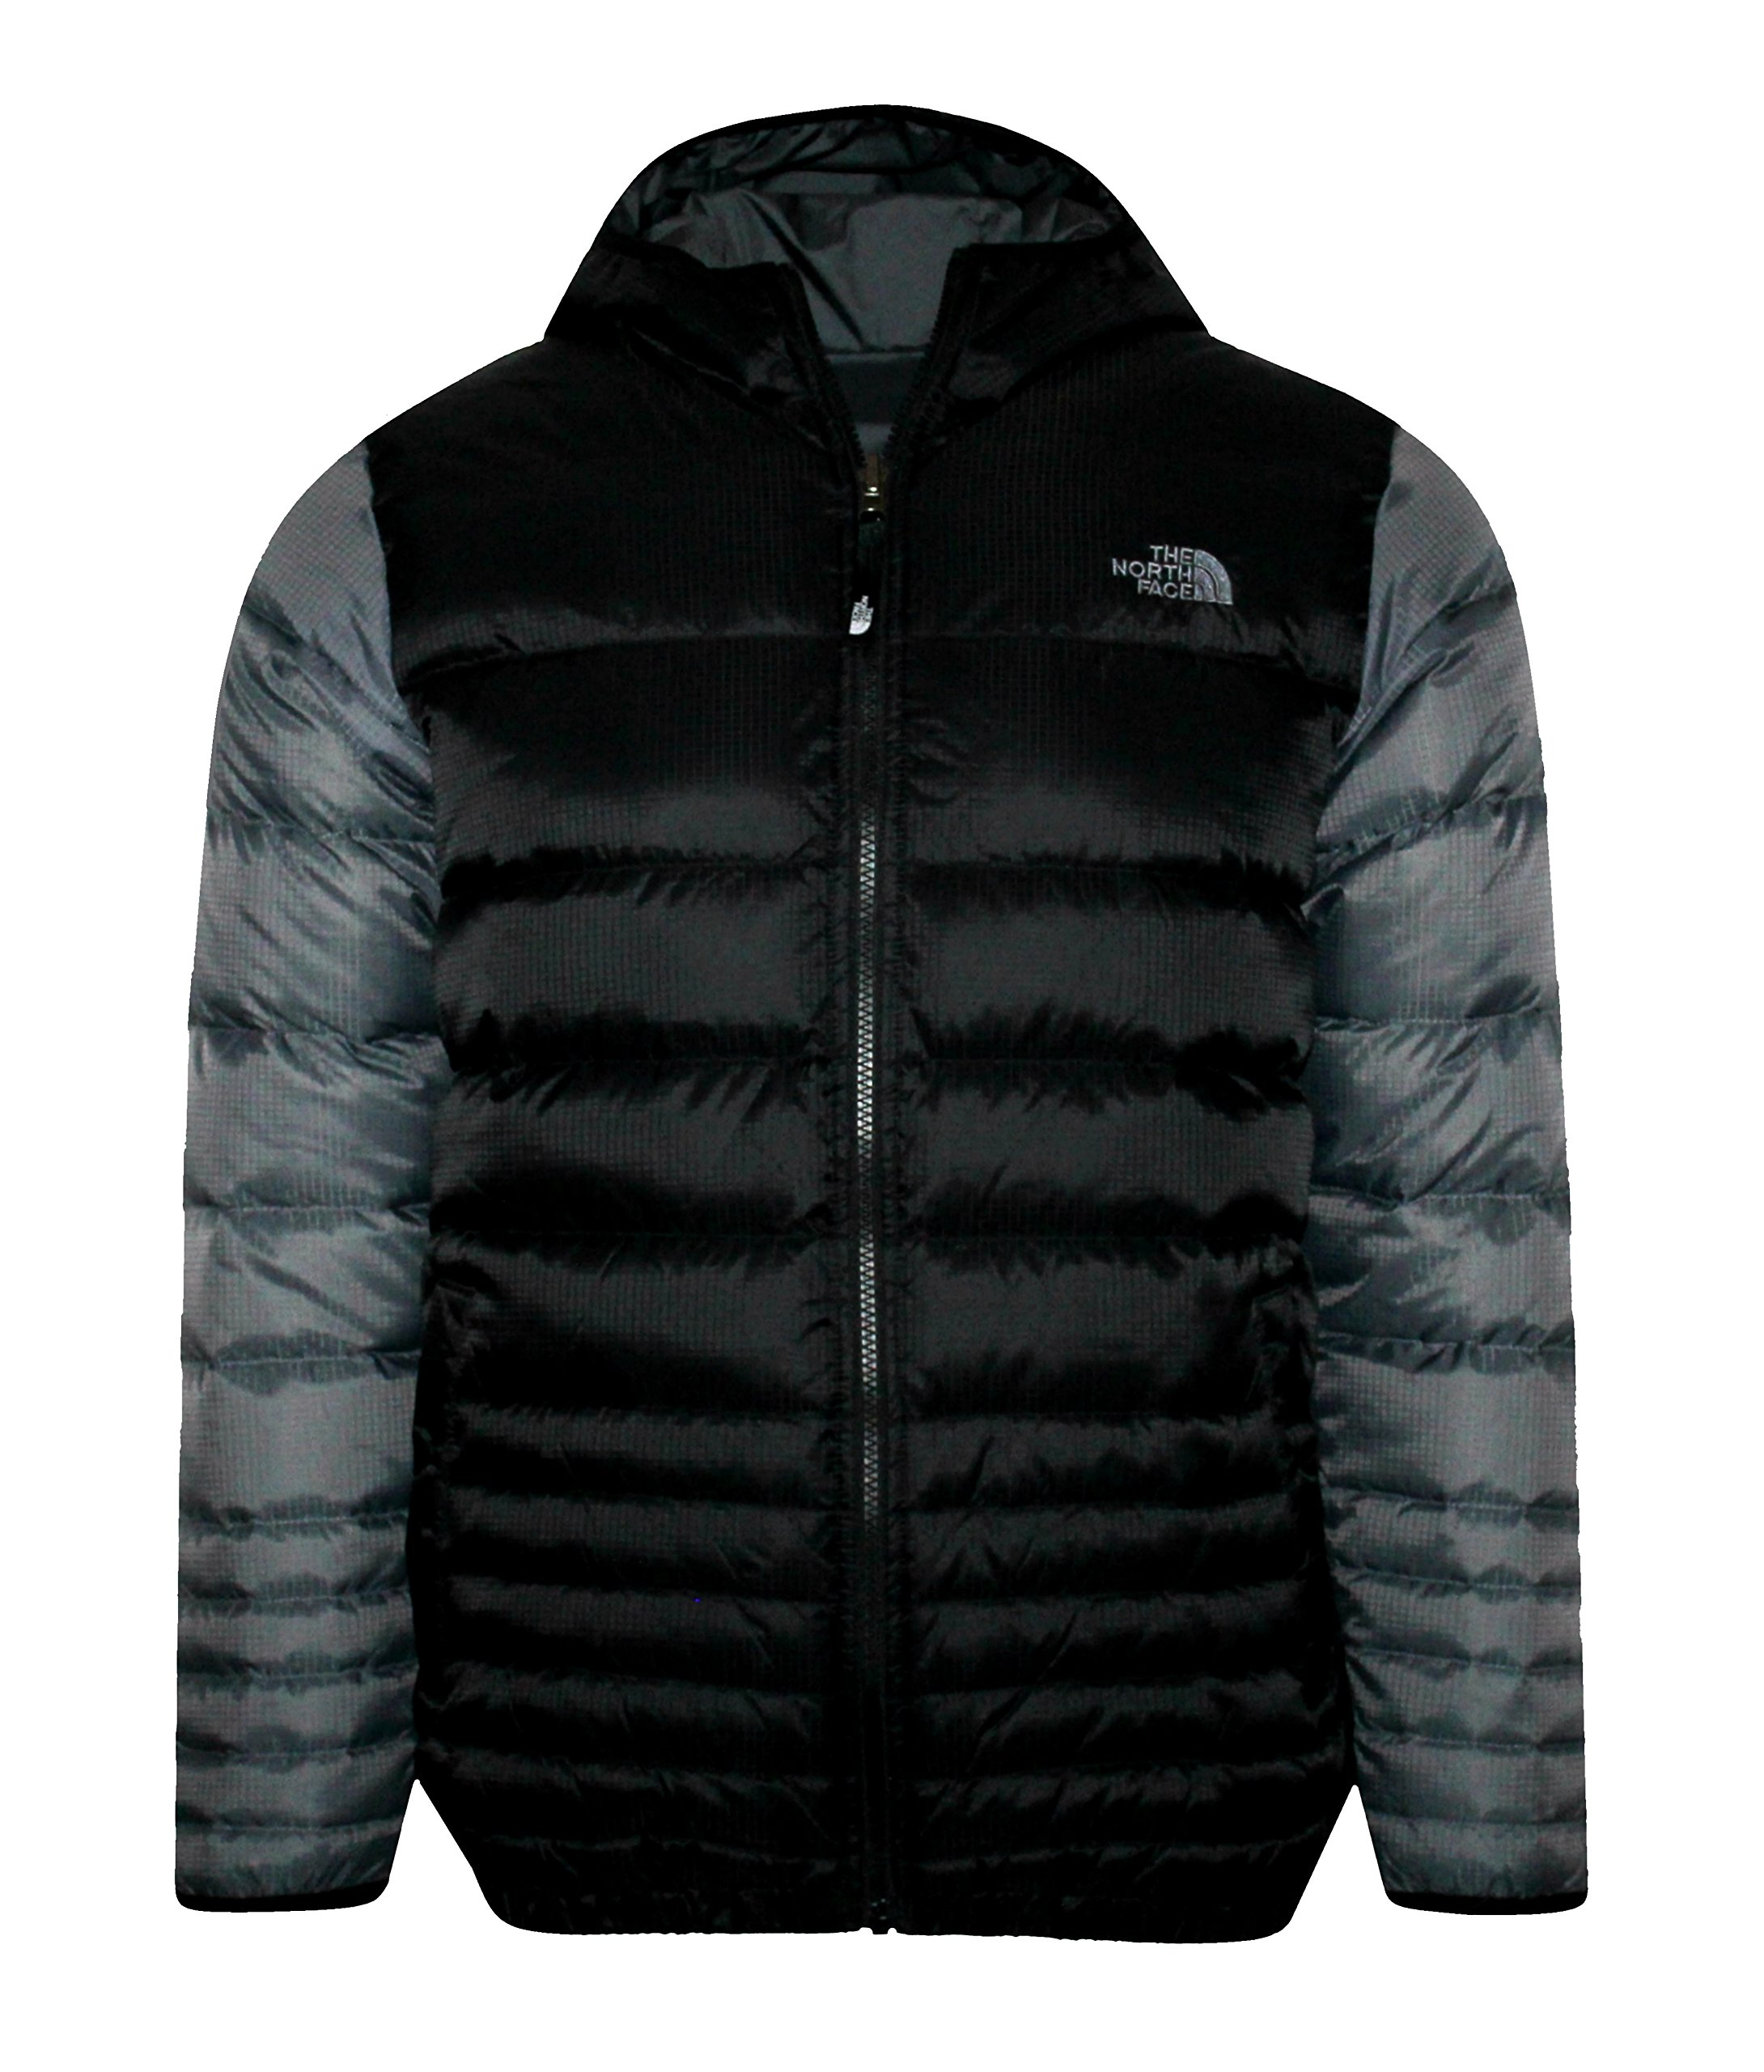 THE NORTH FACE youth boys REESE DOWN REVERSIBLE hooded JACKET  Tnf Black/Grey (M 10/12)